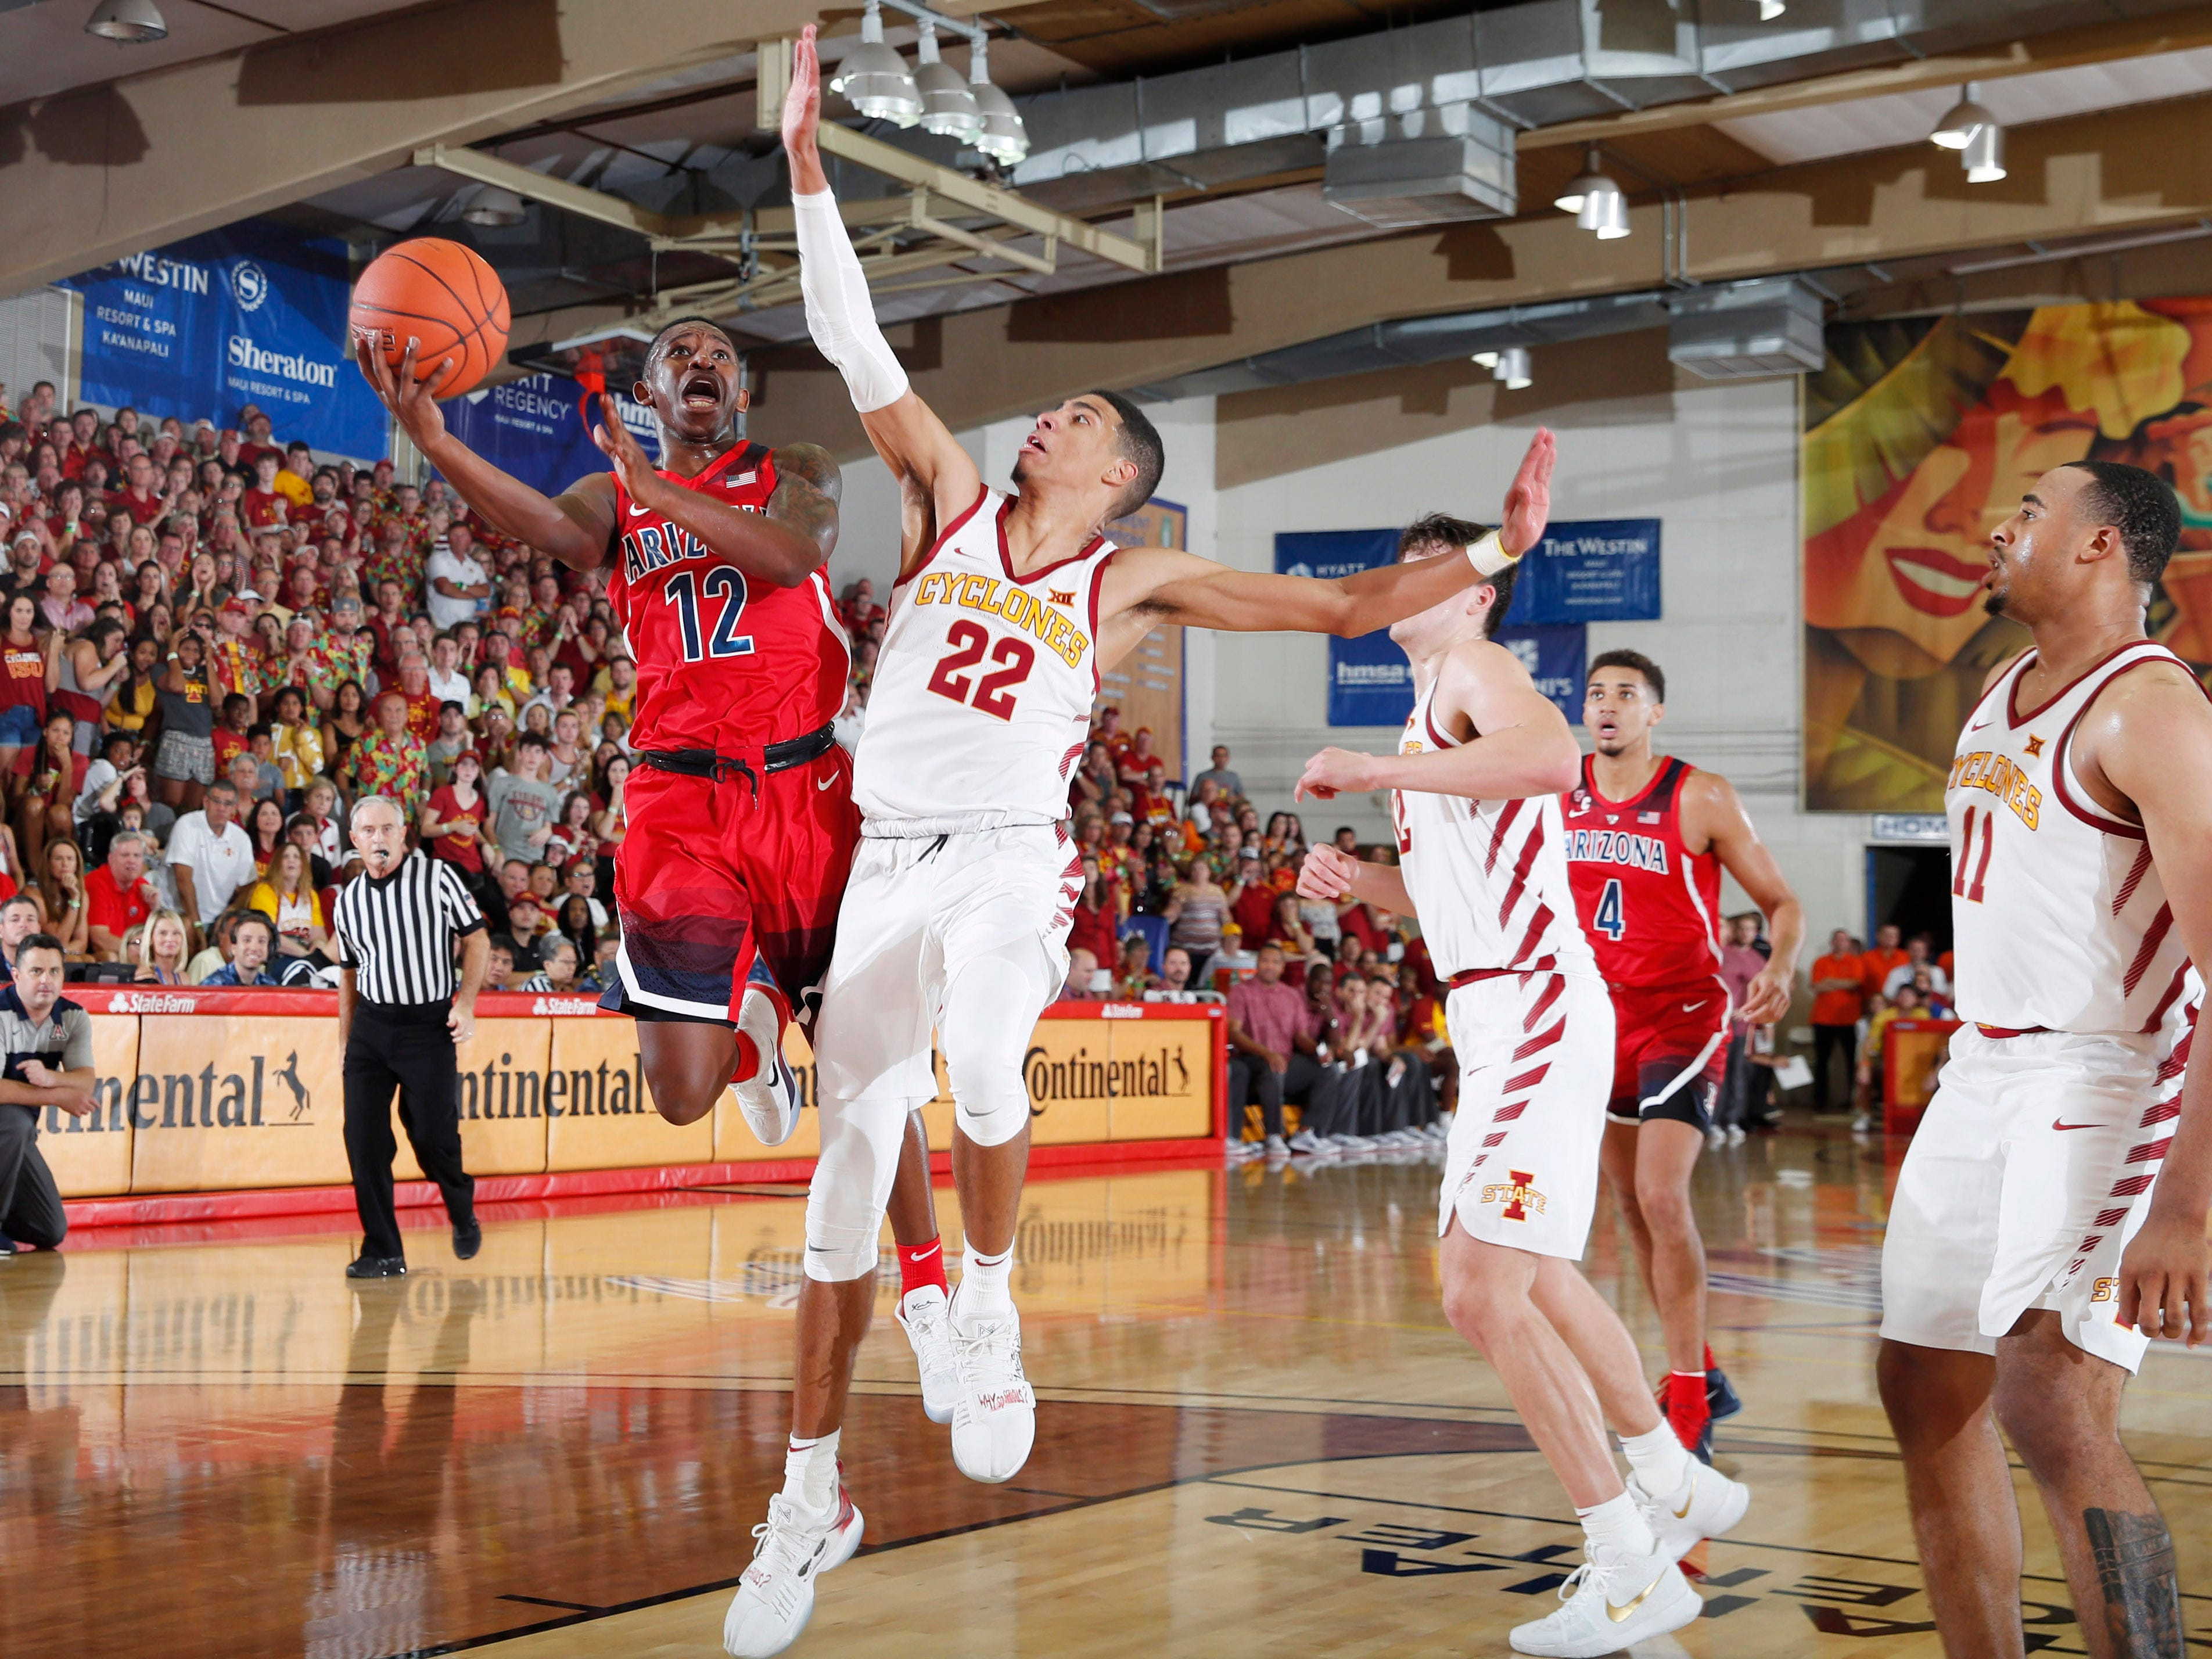 Nov 19, 2018: Arizona Wildcats guard Justin Coleman (12) takes a shot against Iowa State Cyclones guard Tyrese Haliburton (22) in the second half during round one of the Maui Jim Maui Invitational at Lahaina Civic Center.